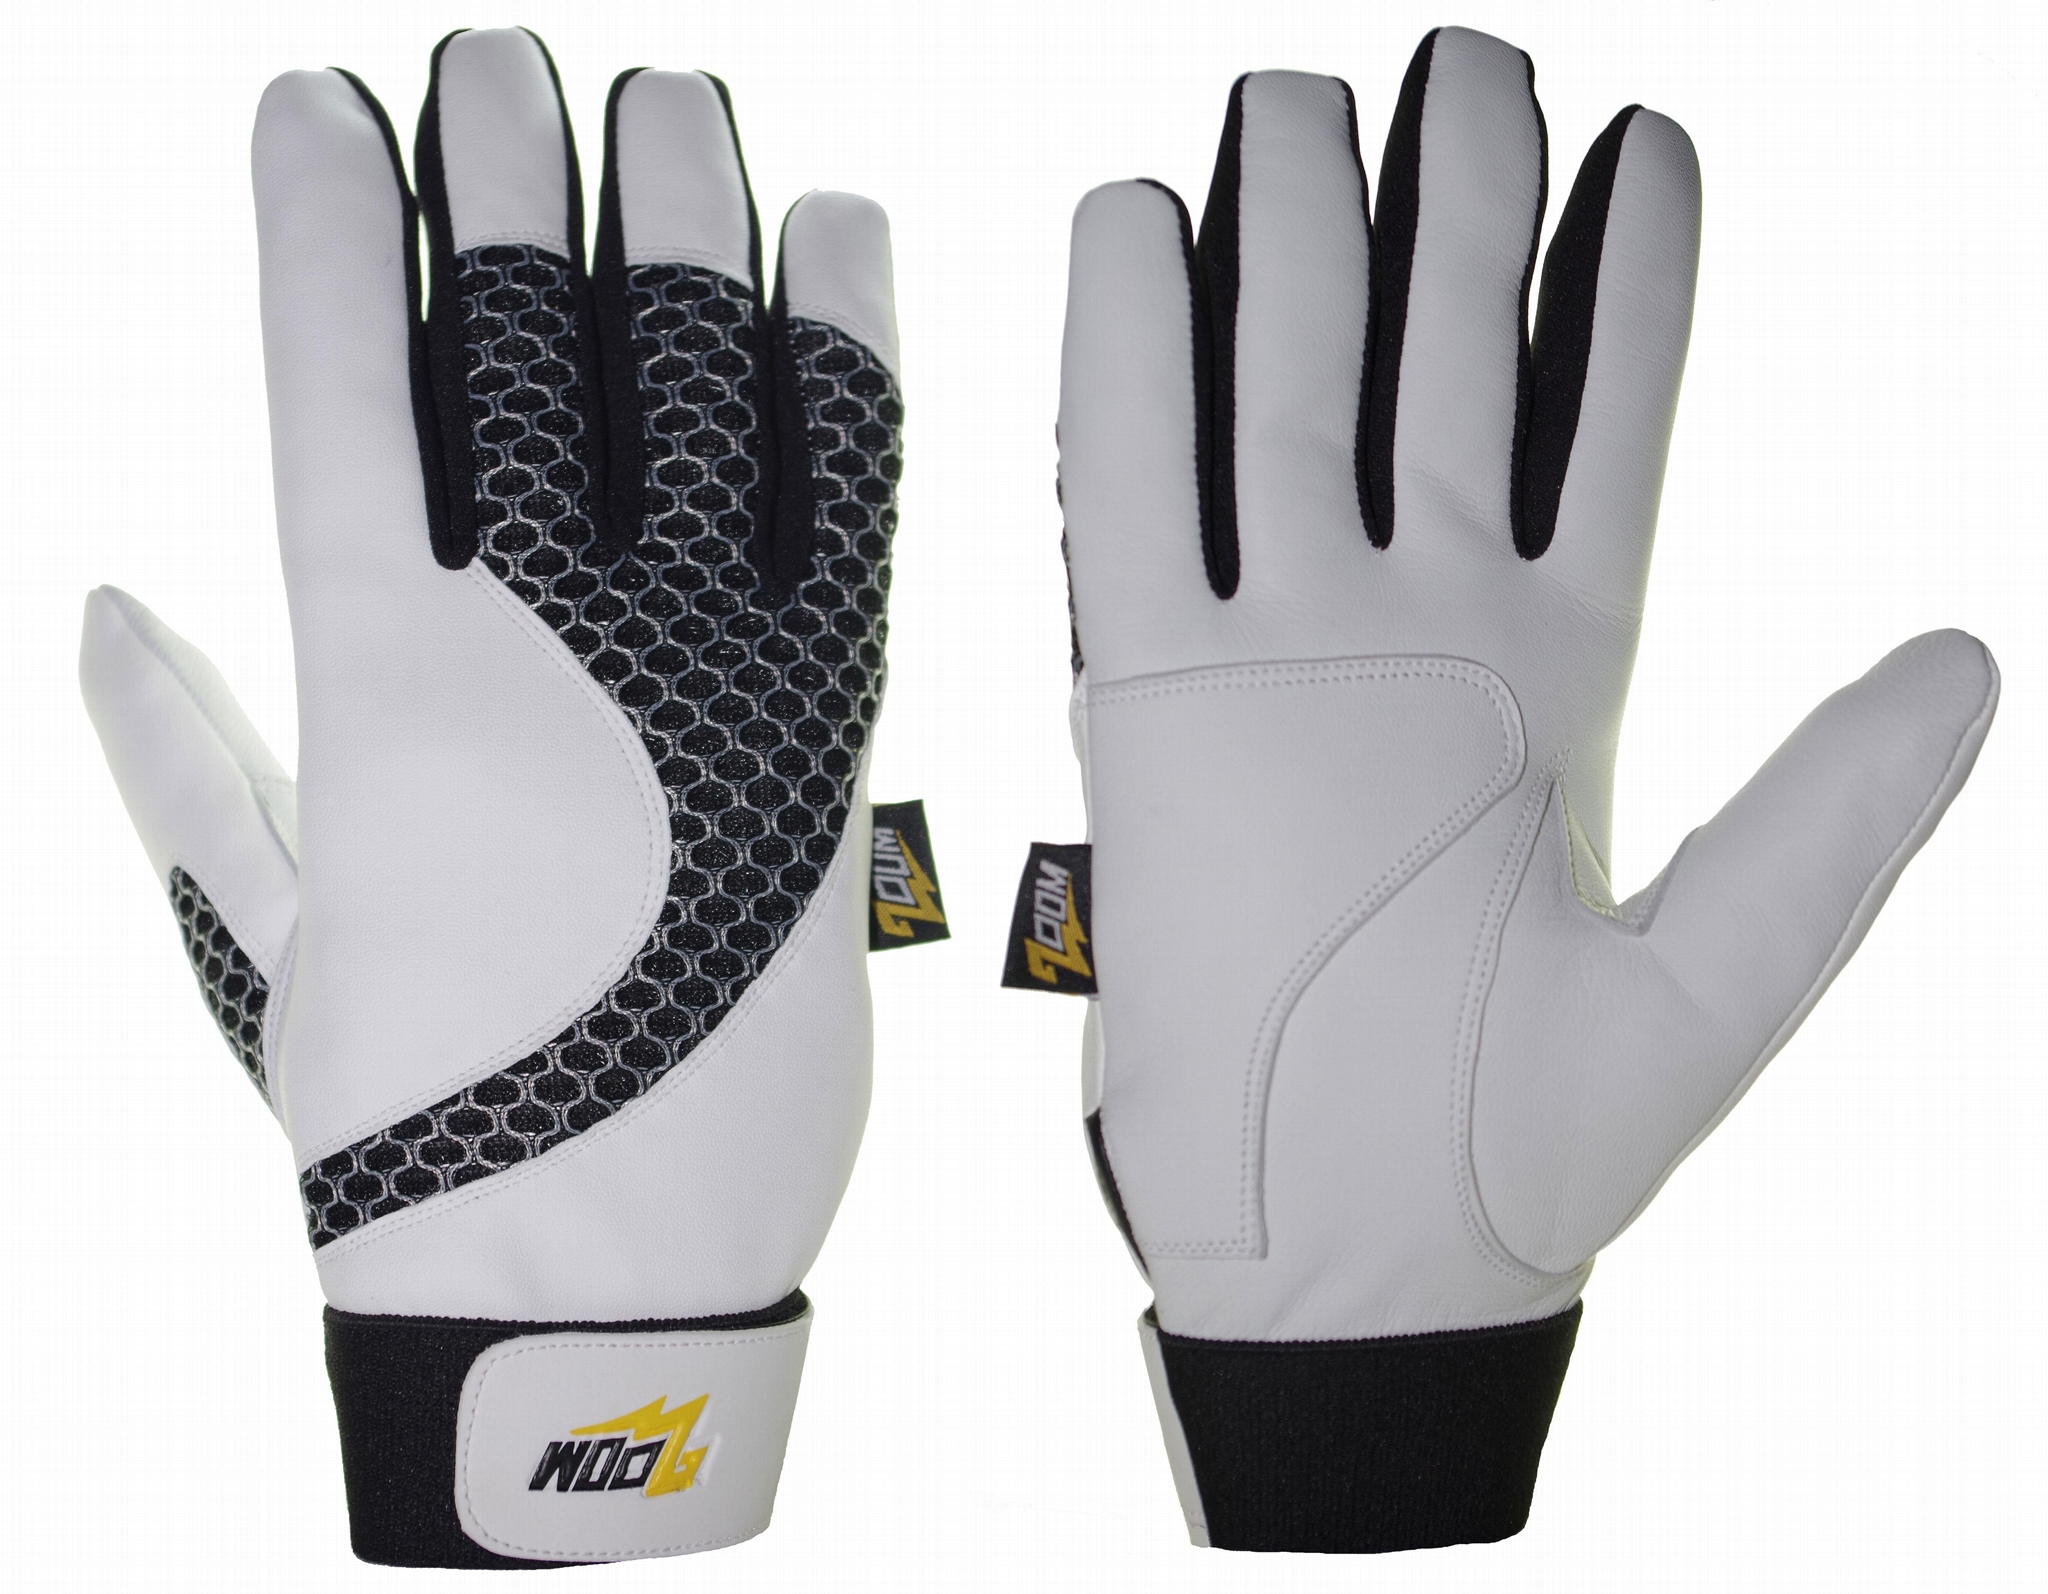 Baseball Batting Gloves 2